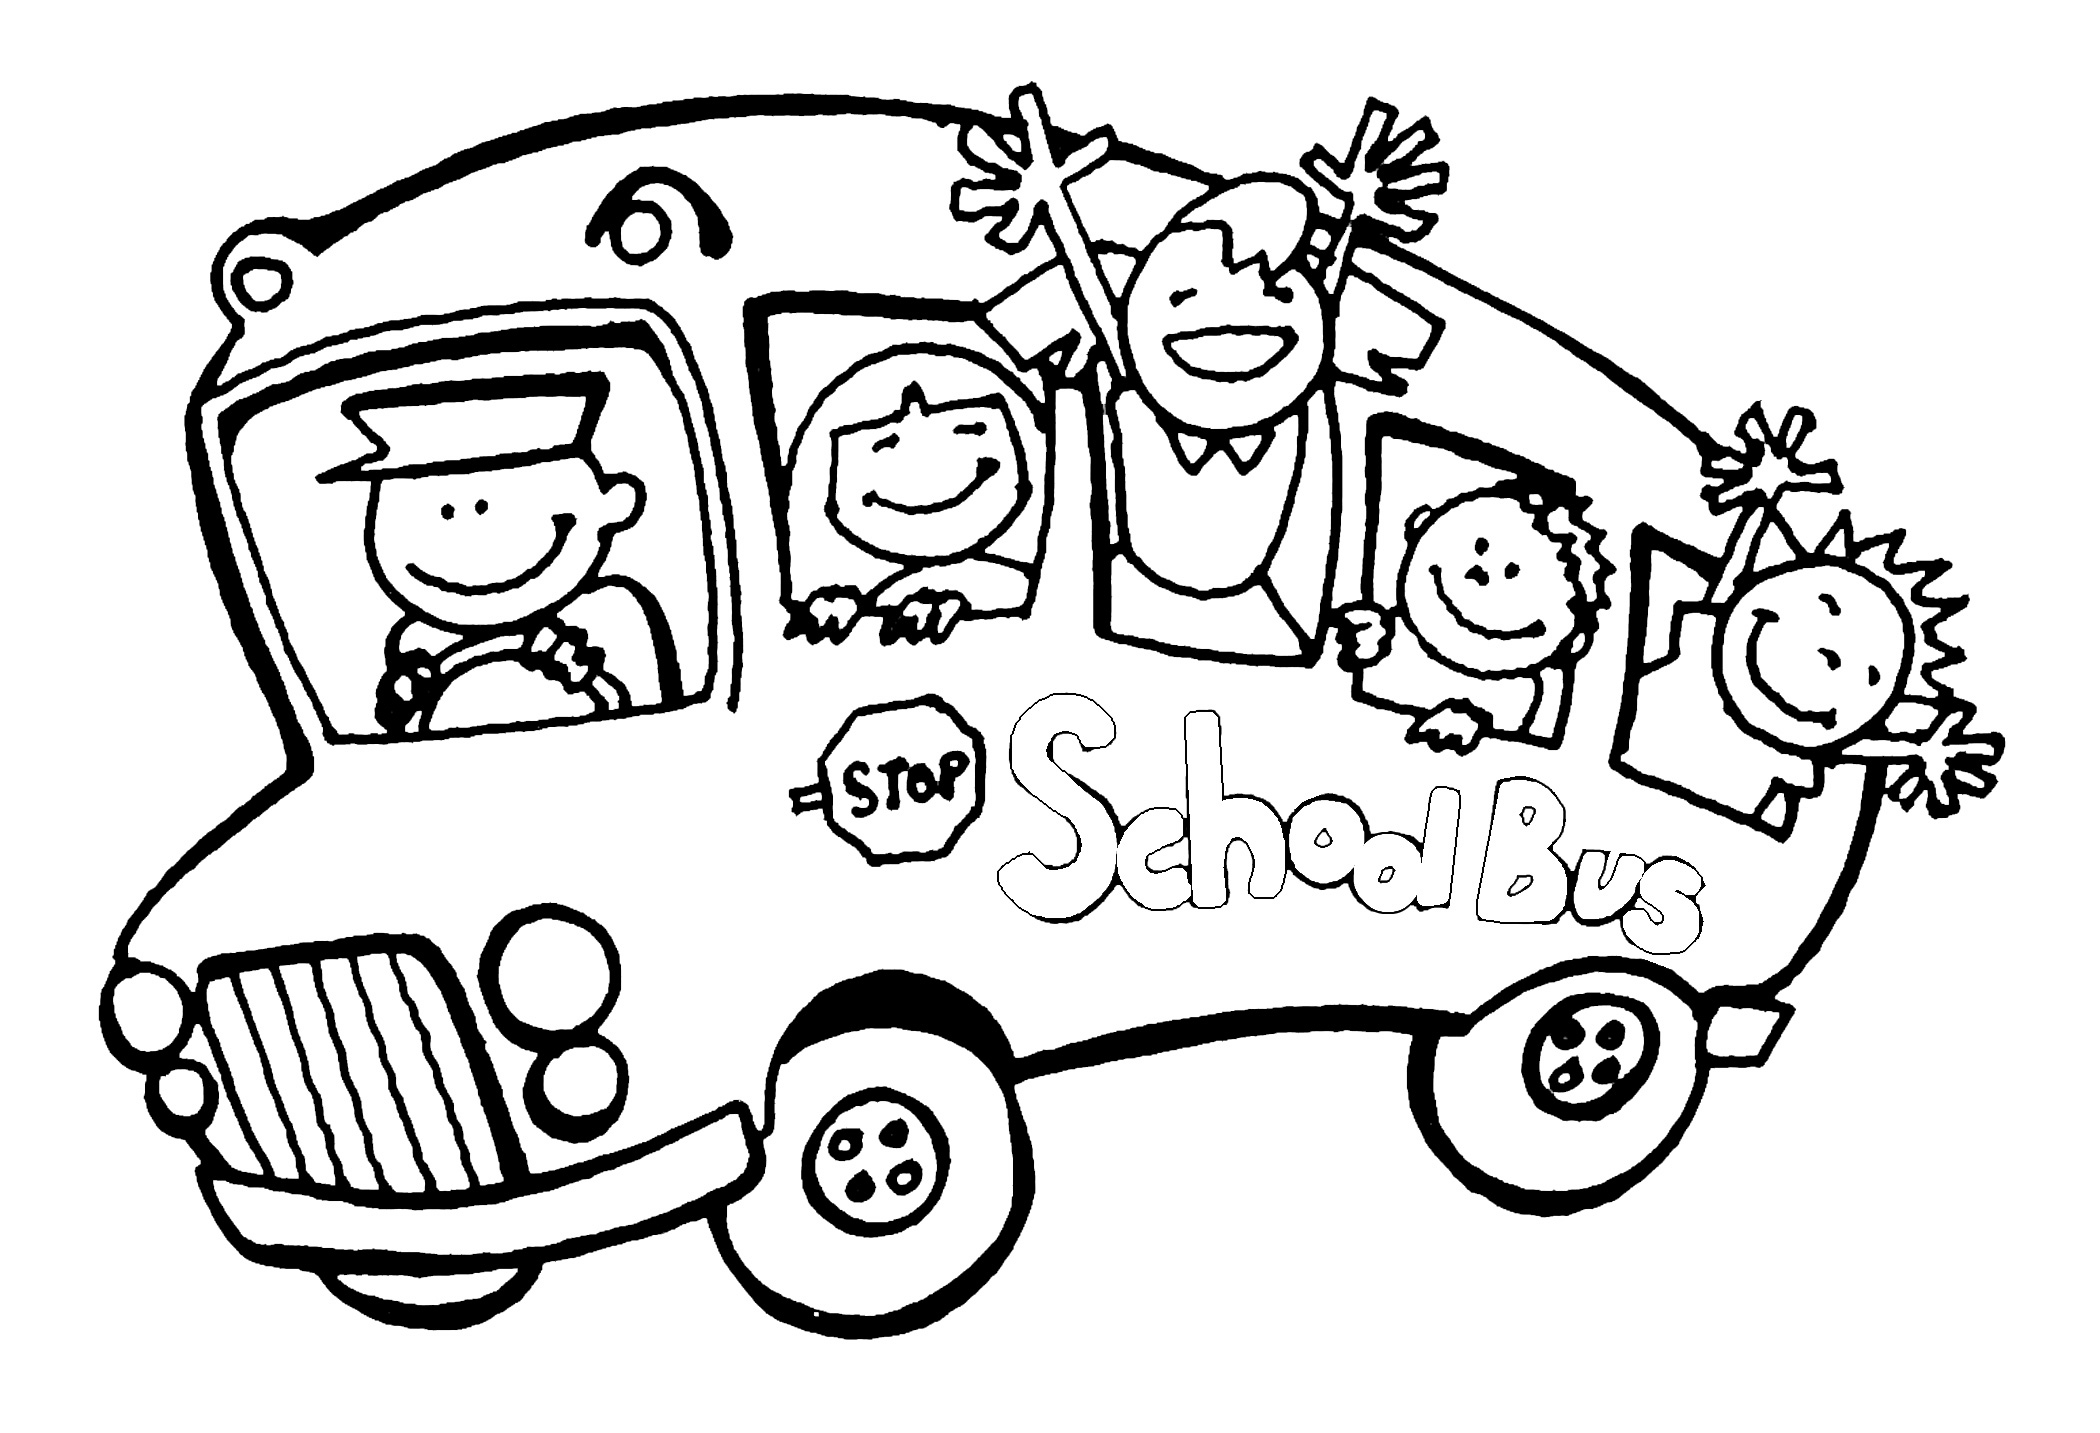 Kindergarten Coloring Sheets 03 Sheri Sarton Printable Of Back to School Coloring Pages for Kindergarten 1480—2168 Printable